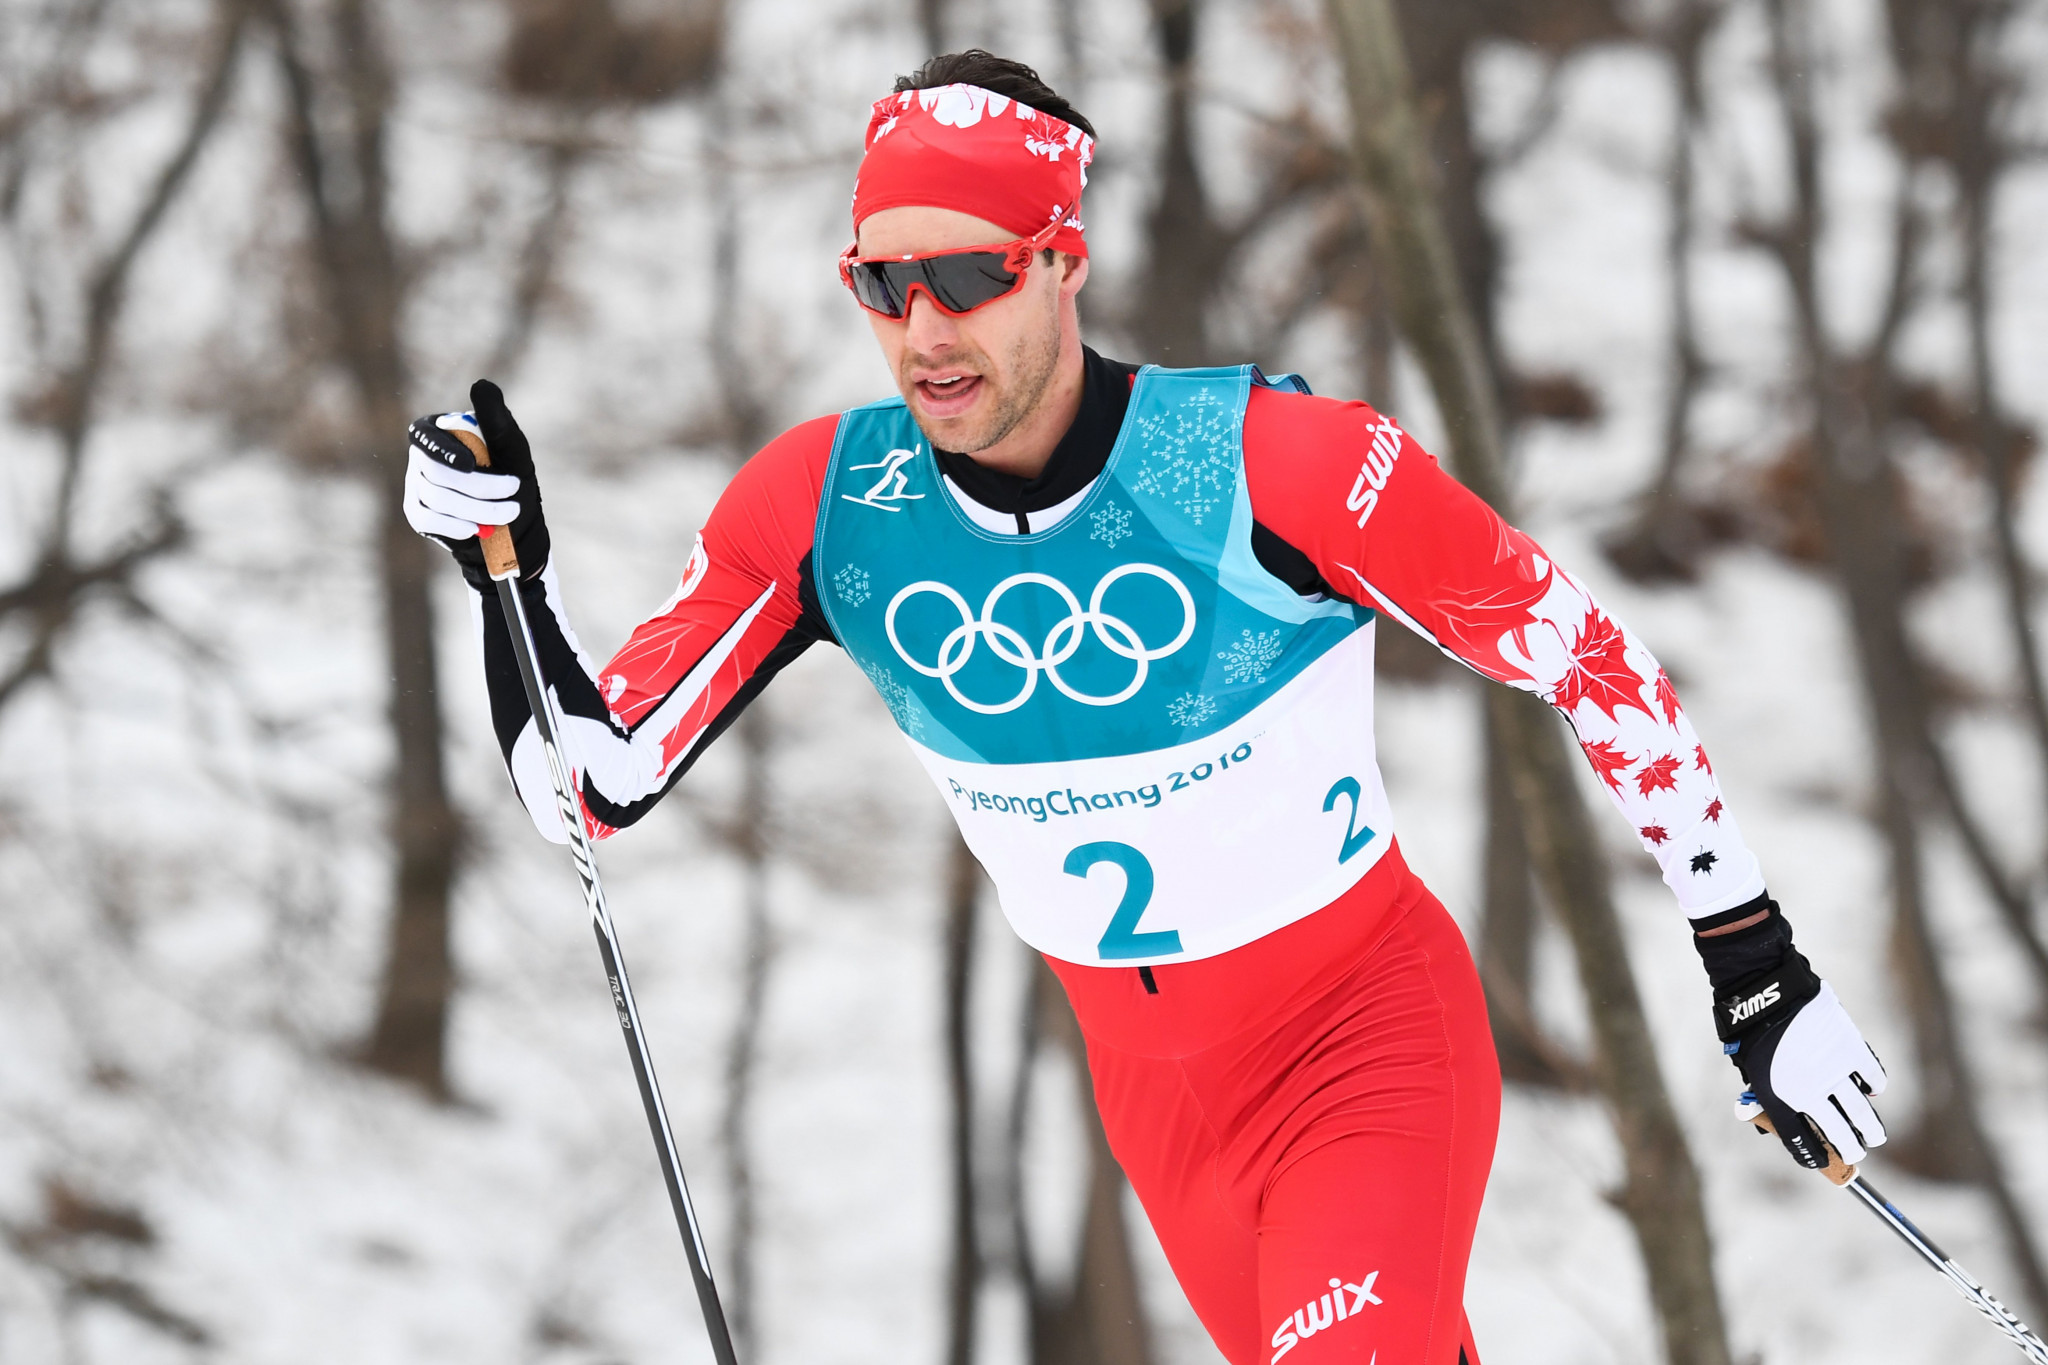 Lemyre appointed to high performance role at Cross Country Canada